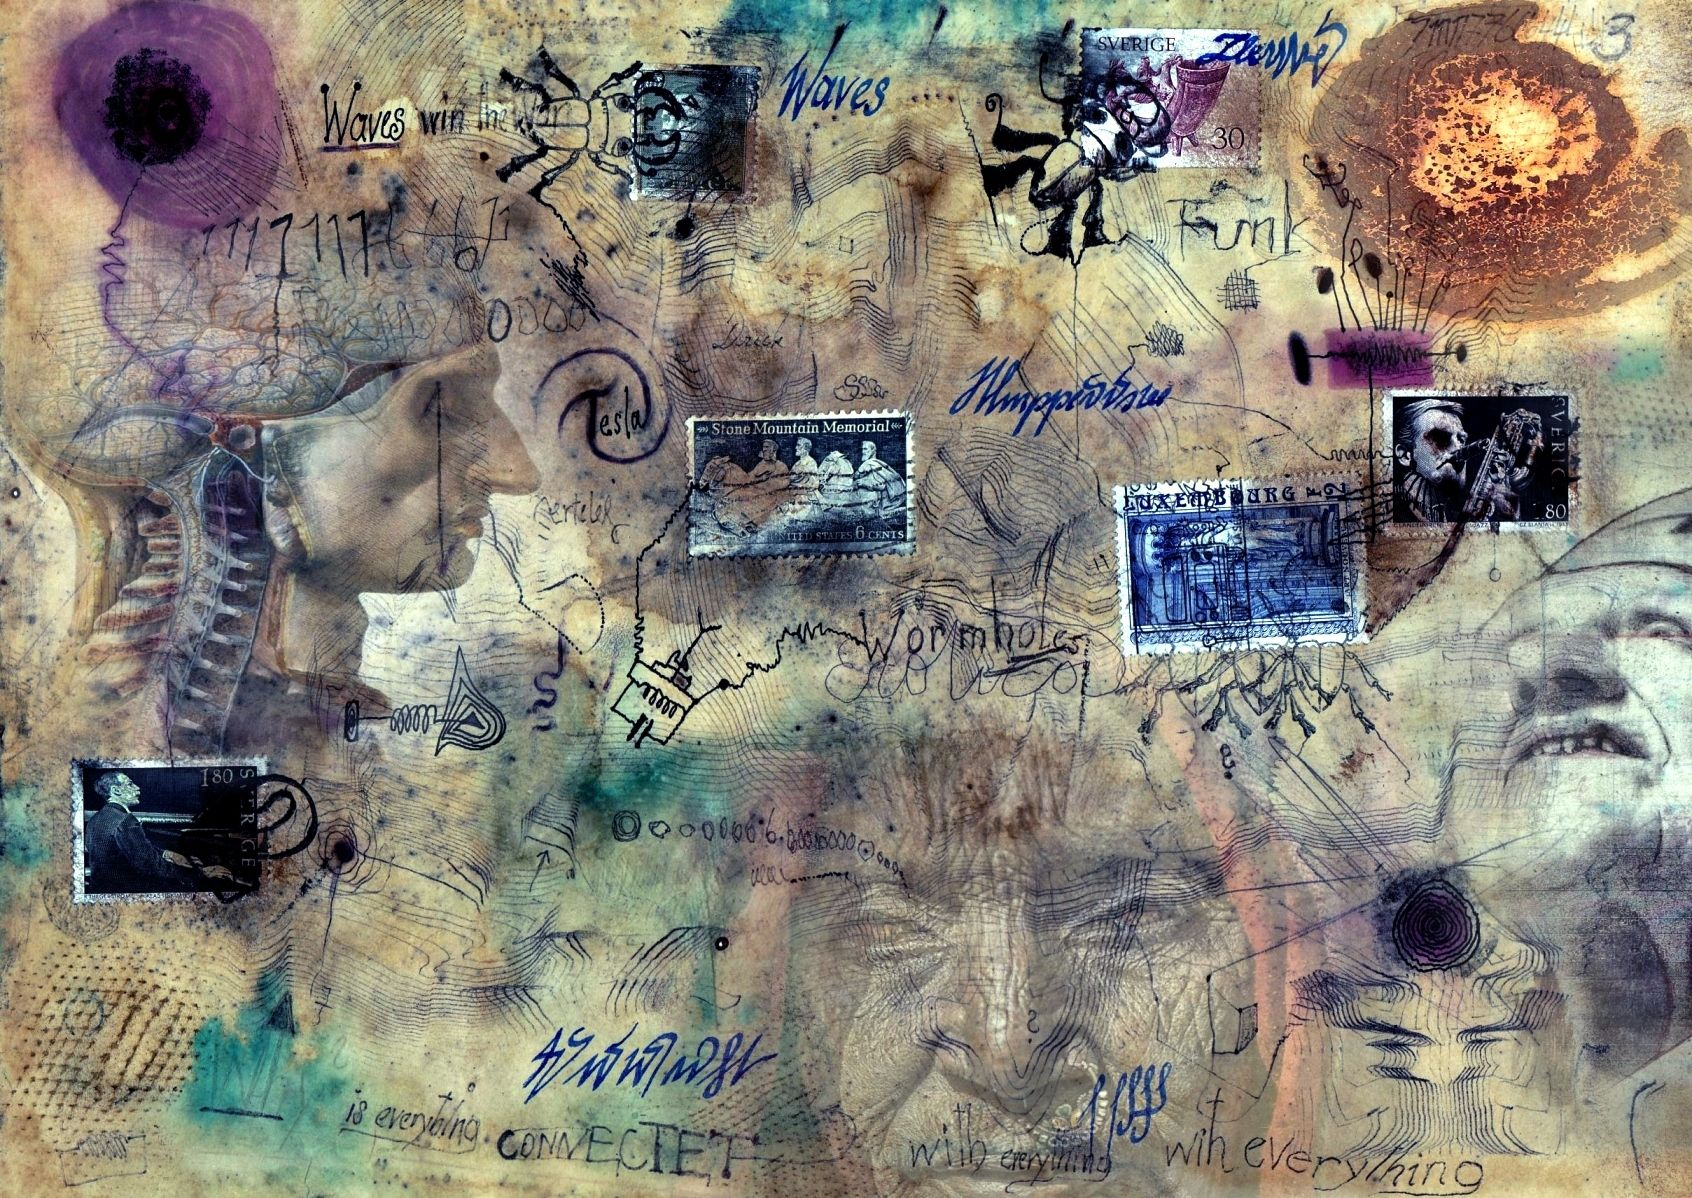 Collage and digital collage by Friedstumm